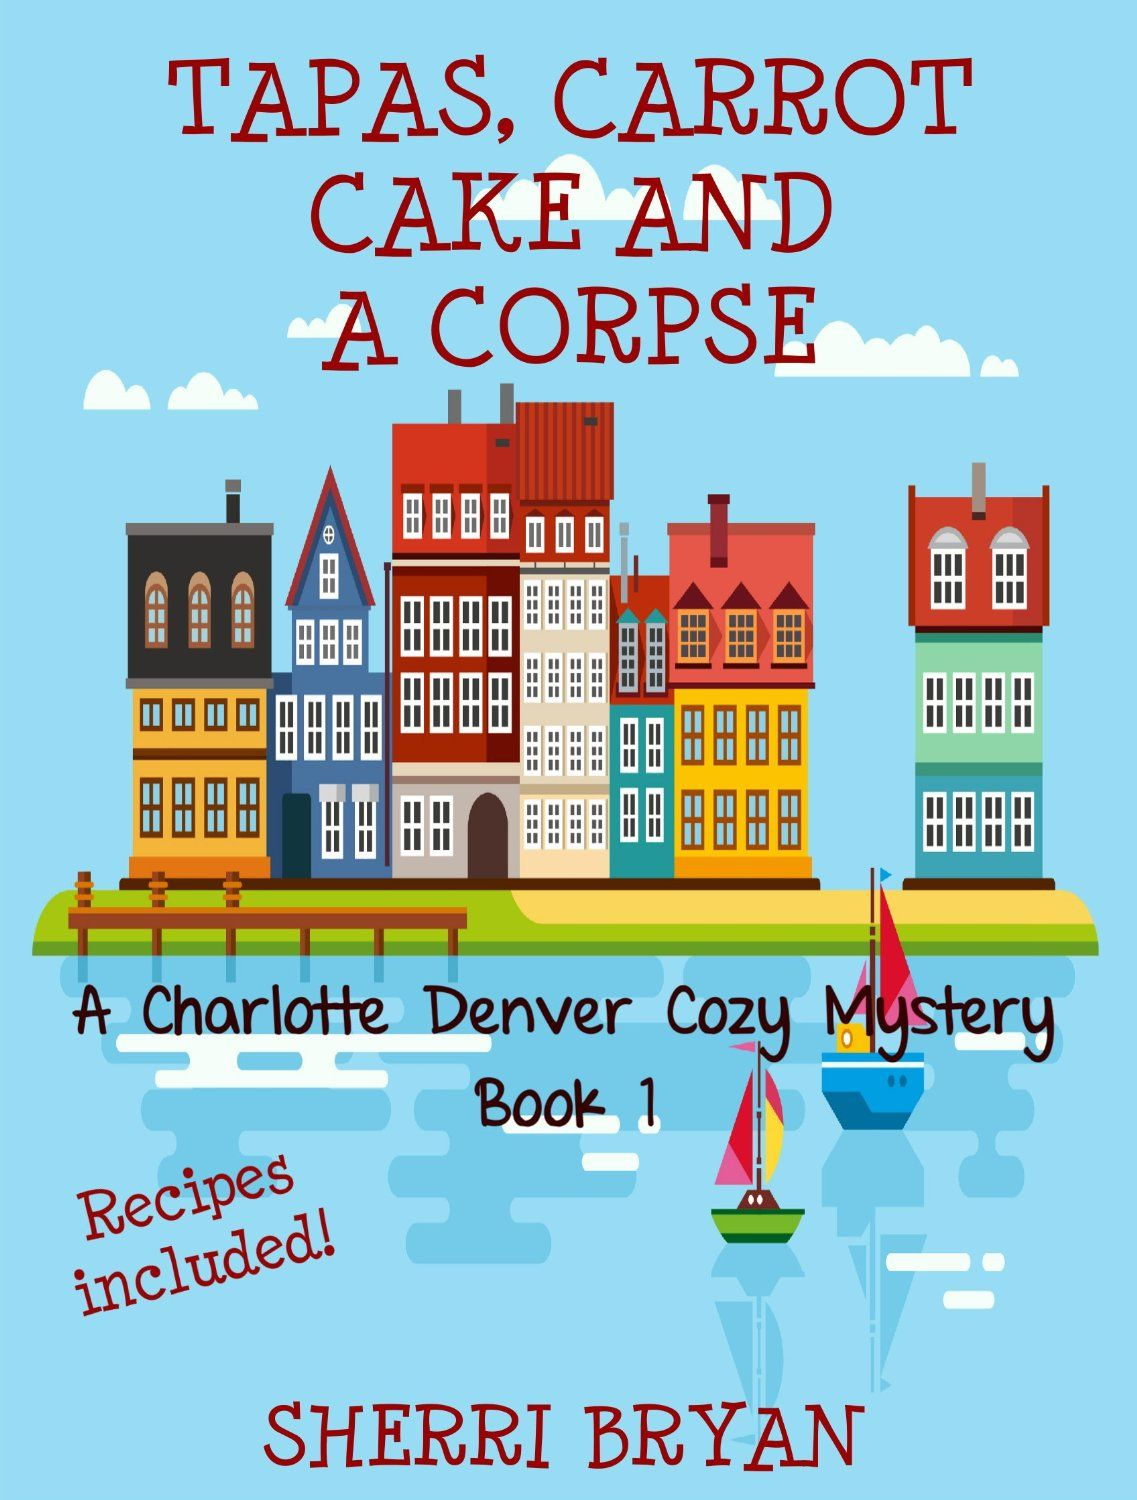 Tapas, Carrot Cake and a Corpse (A Charlotte Denver Cozy Mystery Book 1) by Sherri Bryan  Get your FREE copy now! http://www.planetebooks.net/tapas-carrot-cake-and-a-corpse-a-charlotte-denver-cozy-mystery-book-1-by-sherri-bryan/